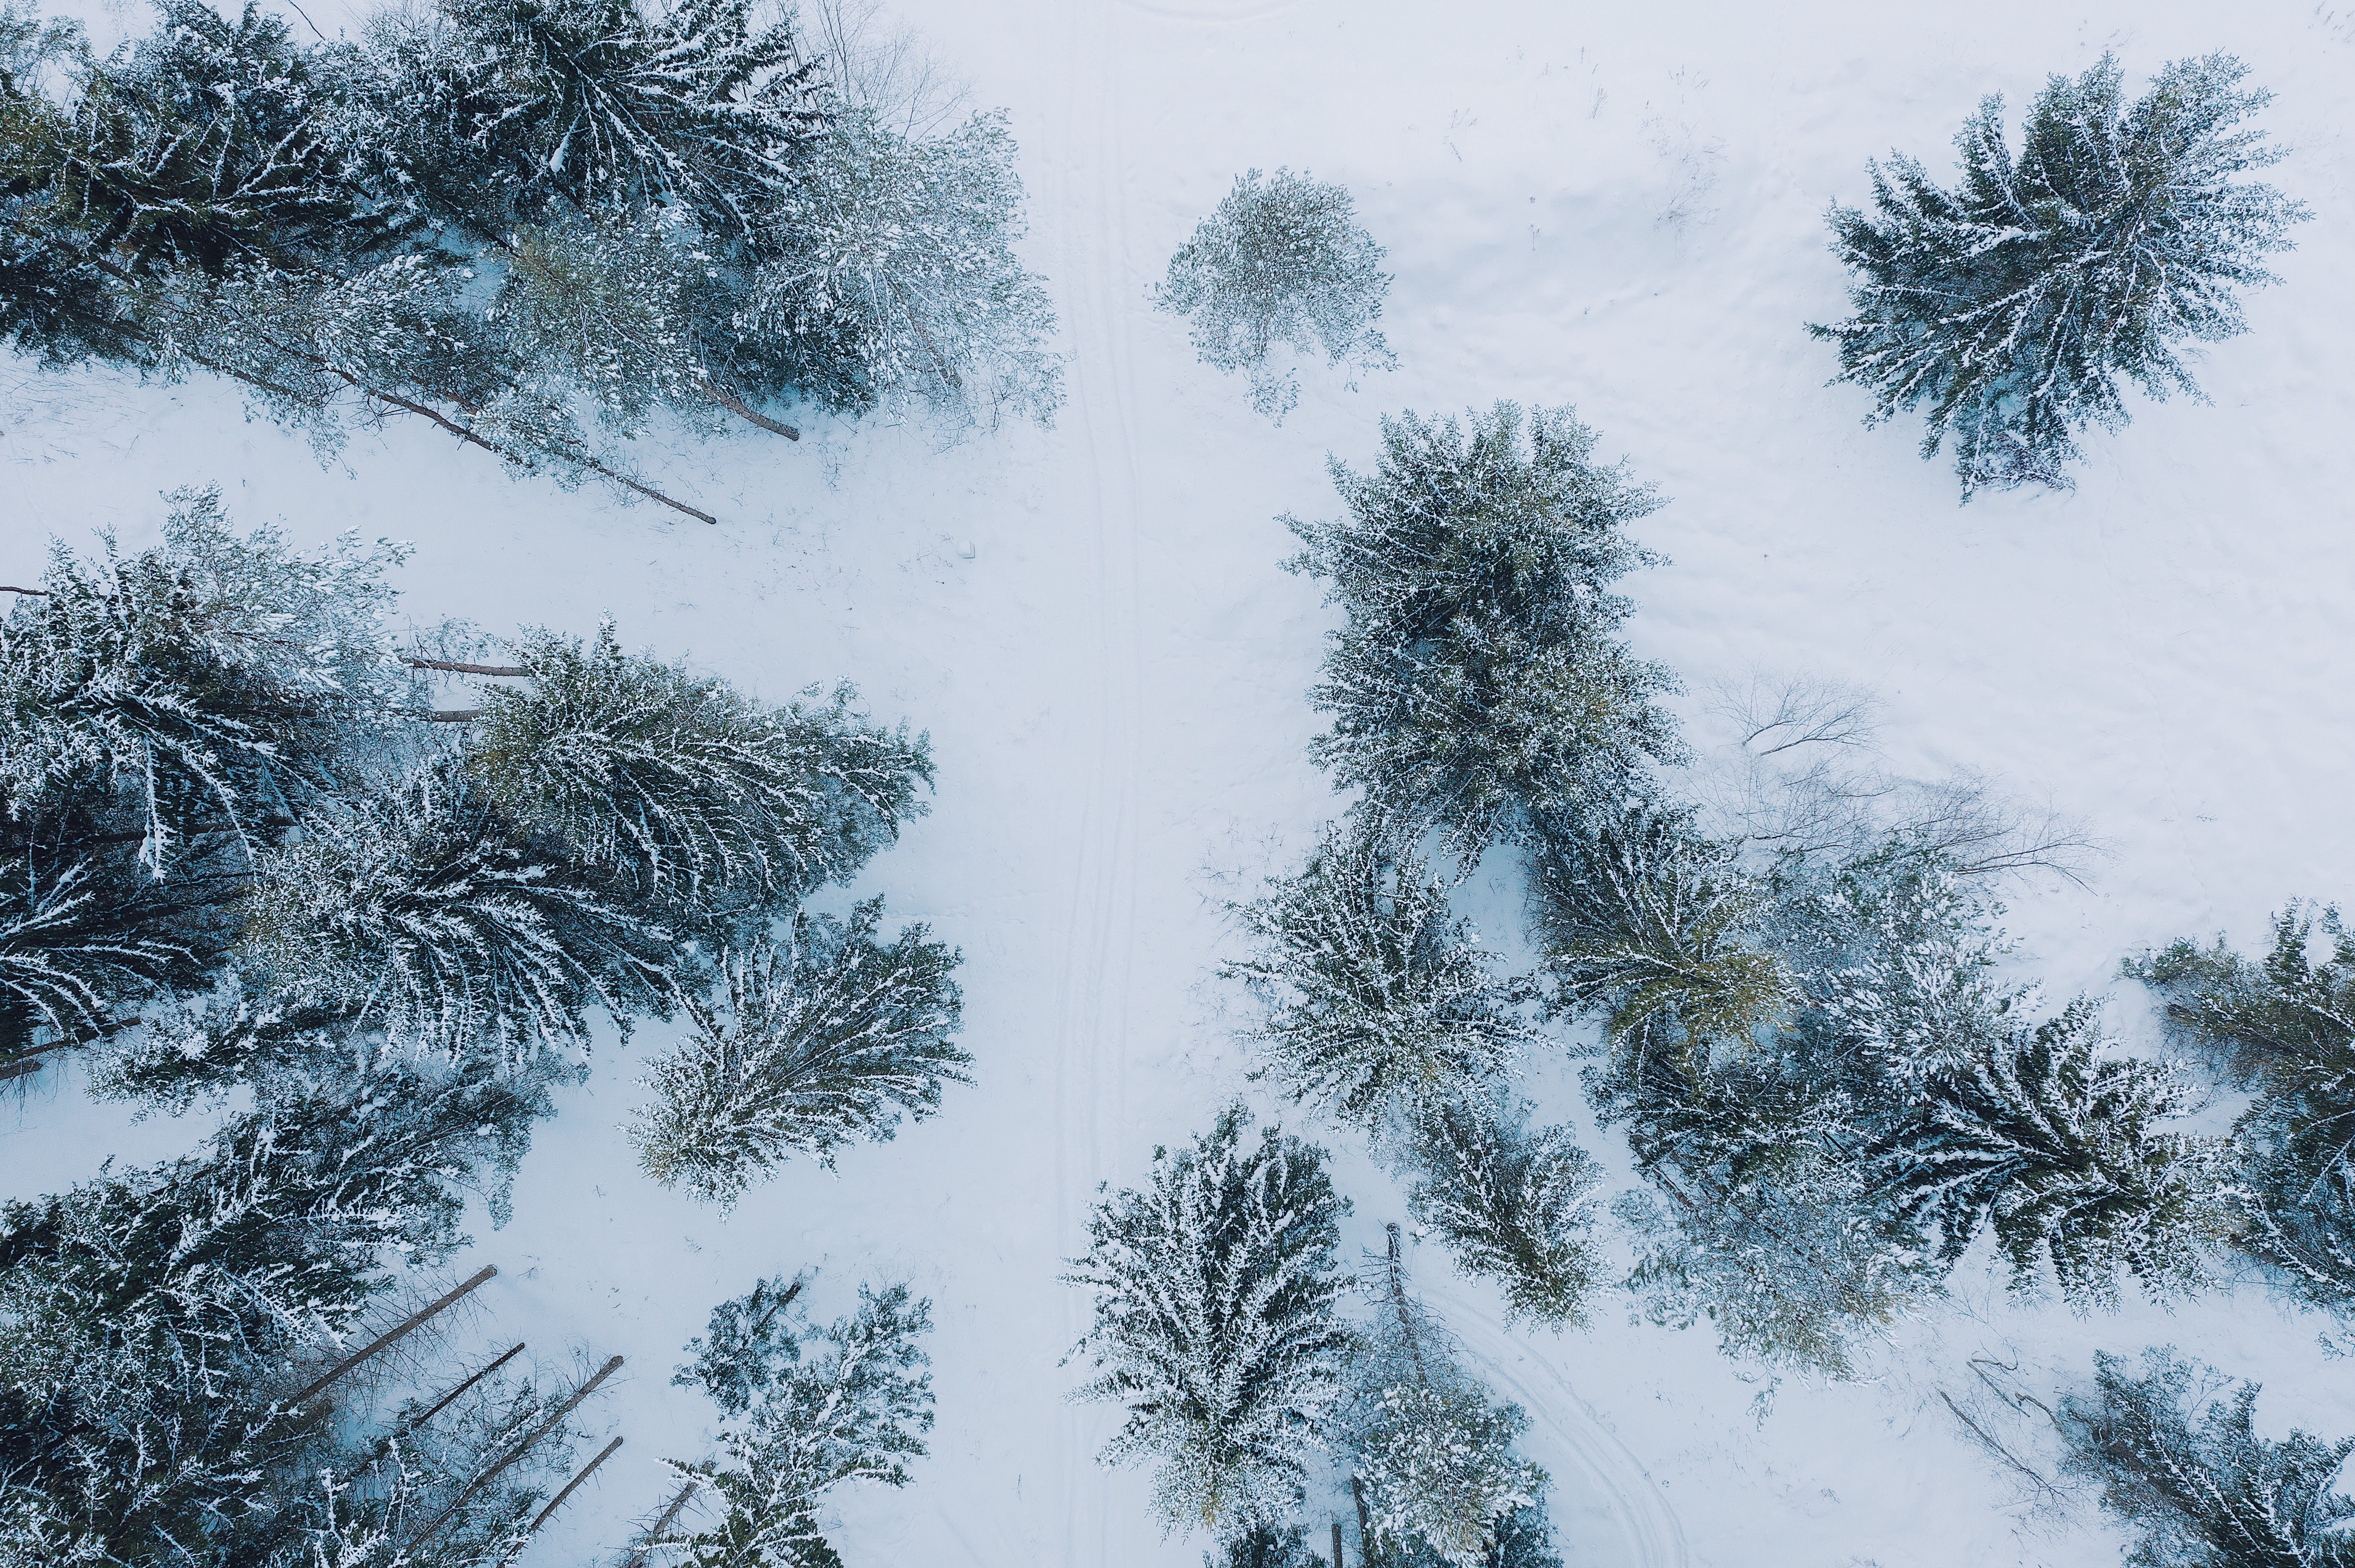 An aerial view of a forest in the winter time.